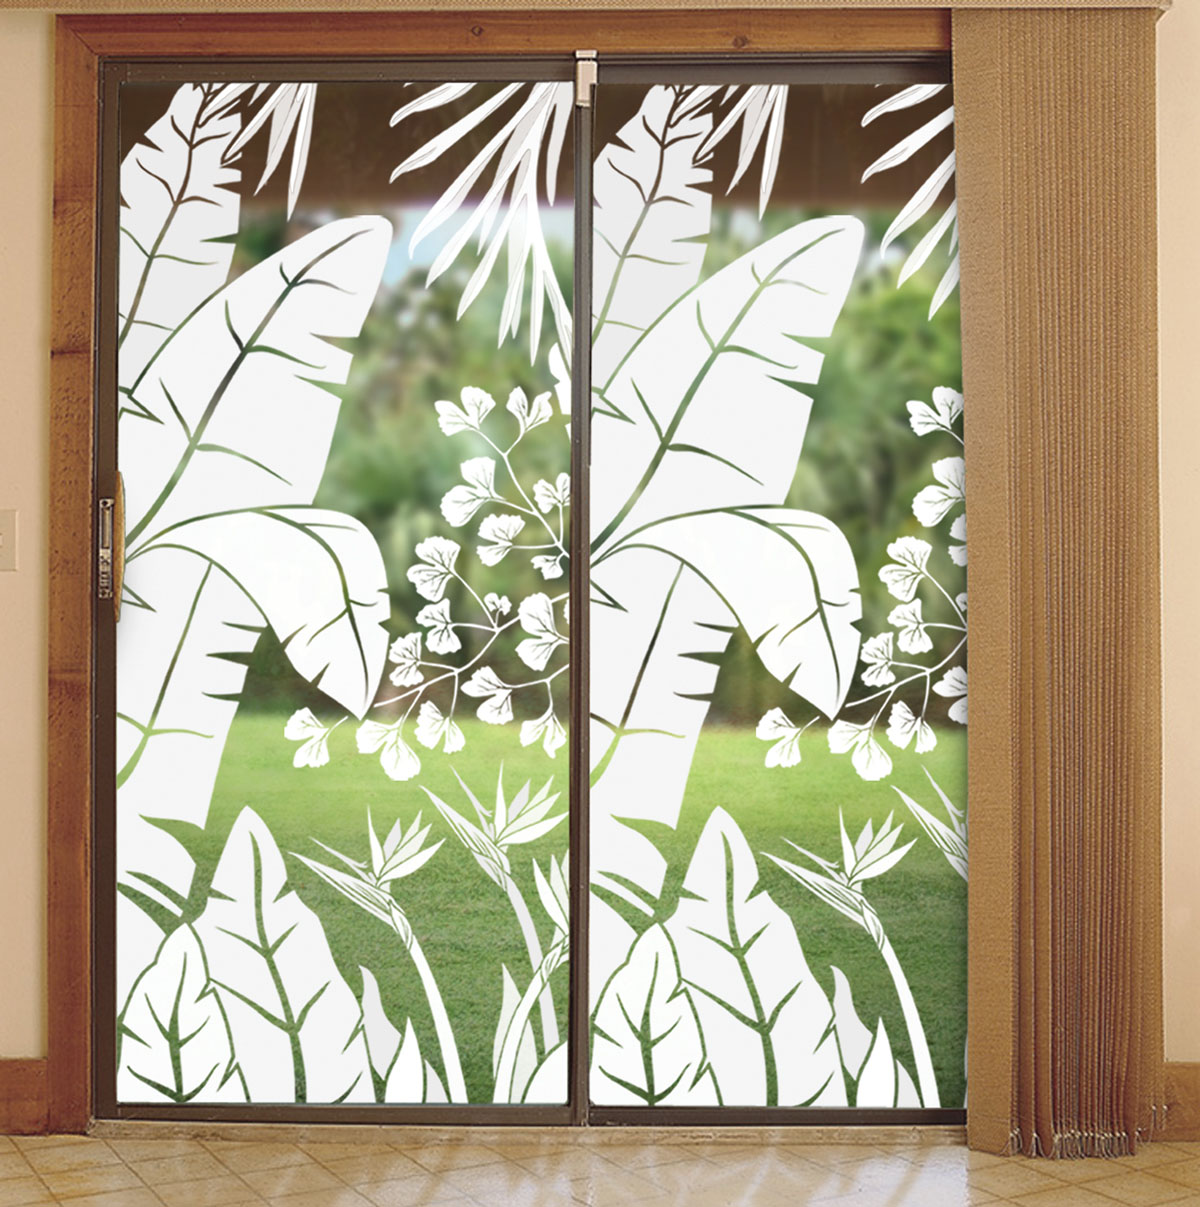 For Interior Rooms Without A Lot Of Windows, Or Homes Surrounded By Trees  That Block Out A Lot Of Sunlight, Glass Interior Doors Can Help Brighten Up  Inside ...